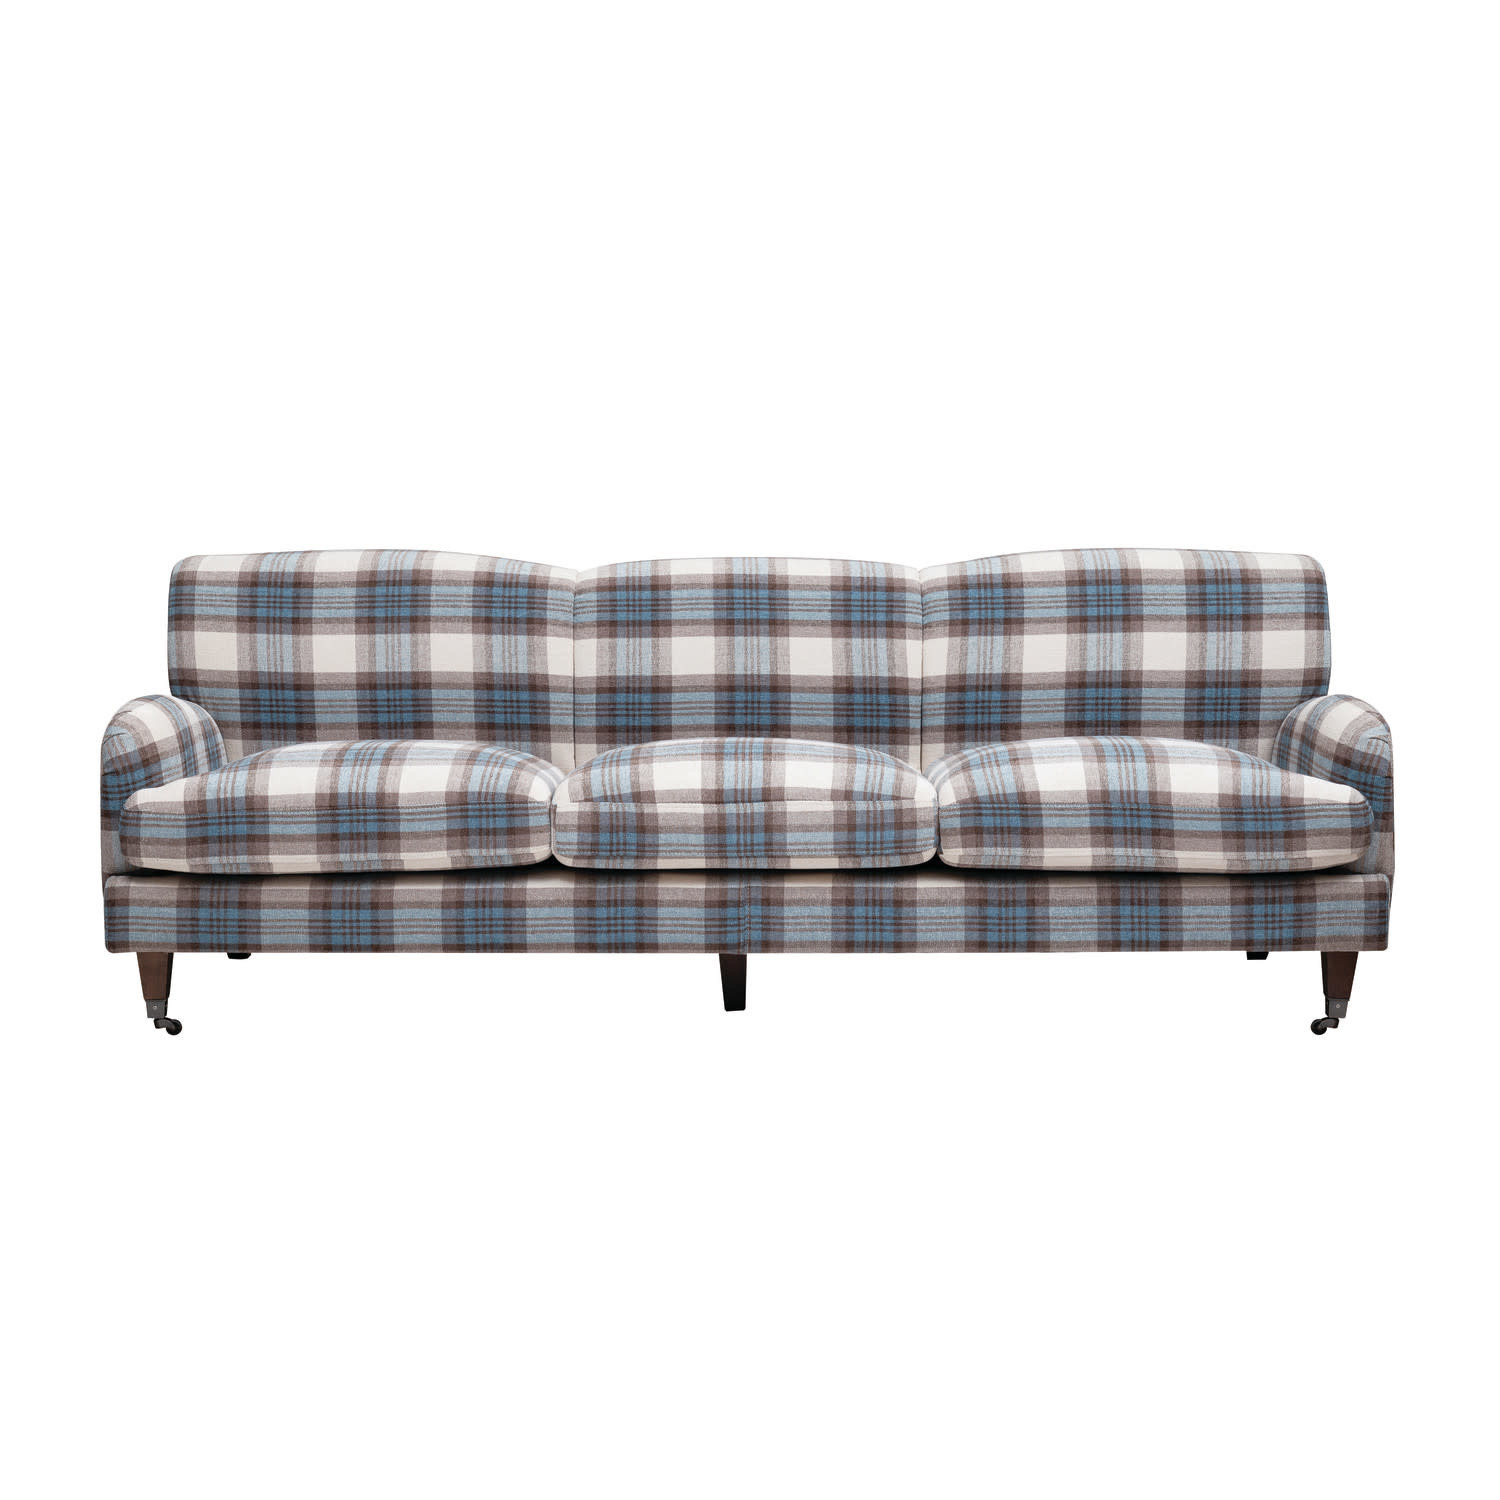 Creativeco-op Blue and Brown Plaid Couch